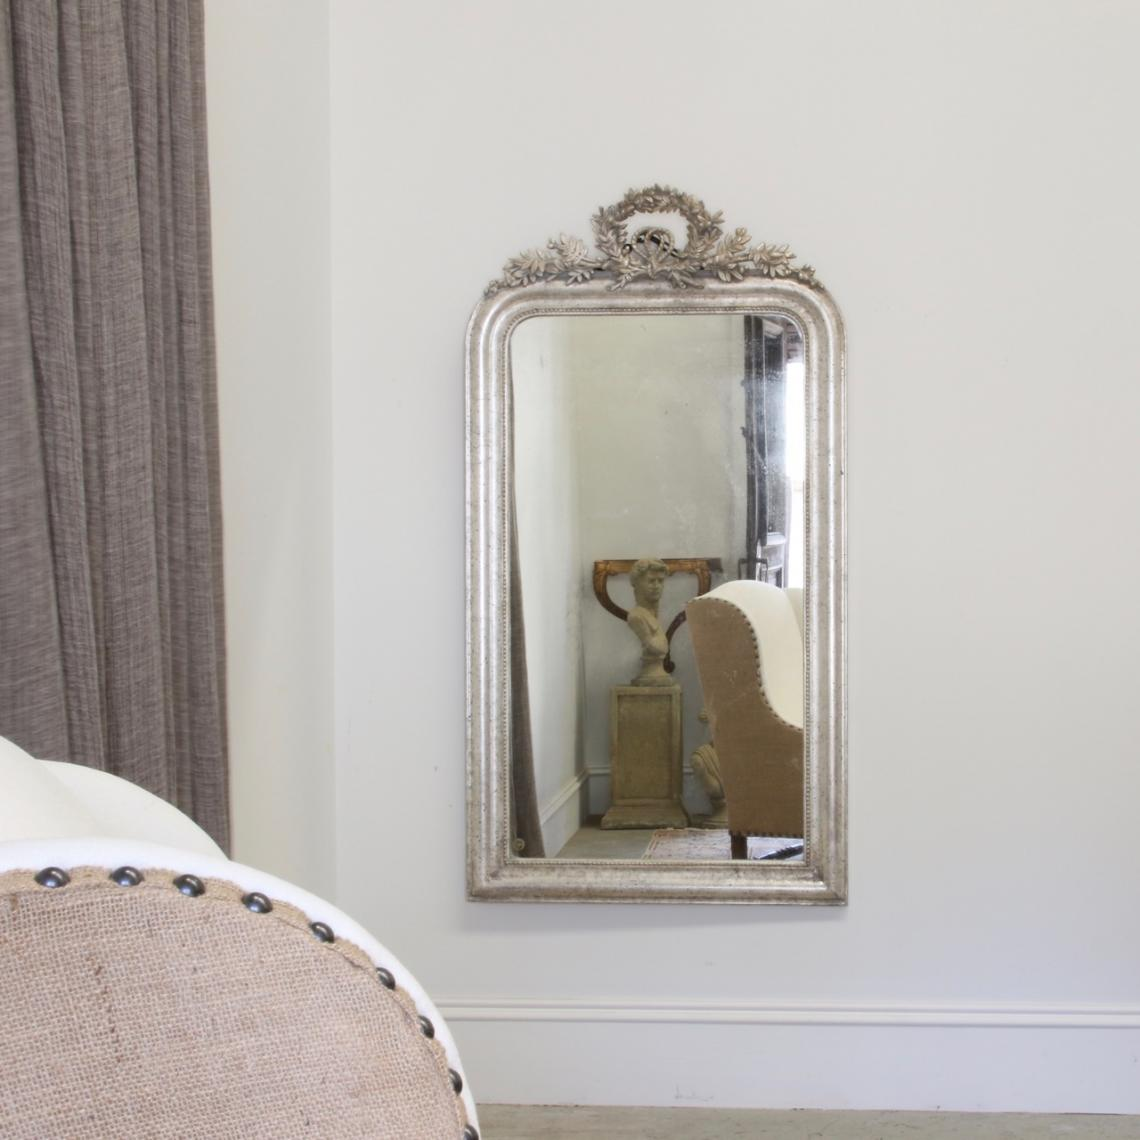 118-45 - Louis Philippe Crested Silver Mirror